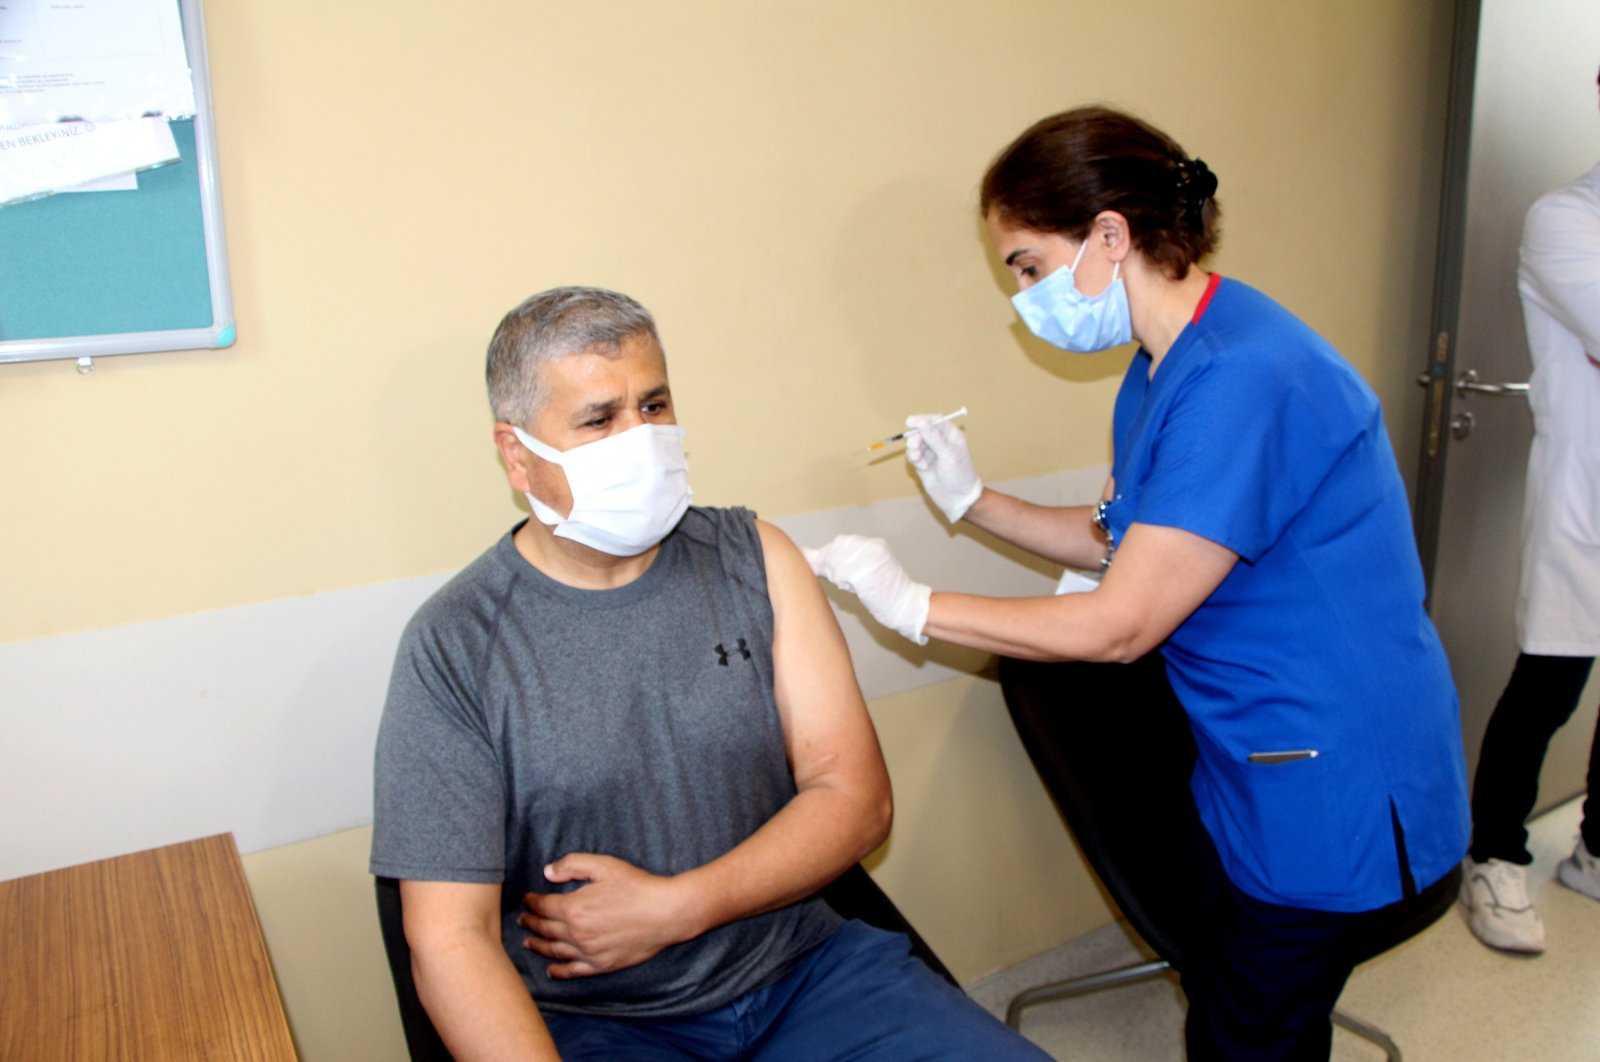 A man gets vaccinated at a hospital, in Adana, southern Turkey, April 29, 2021. (DHA PHOTO)